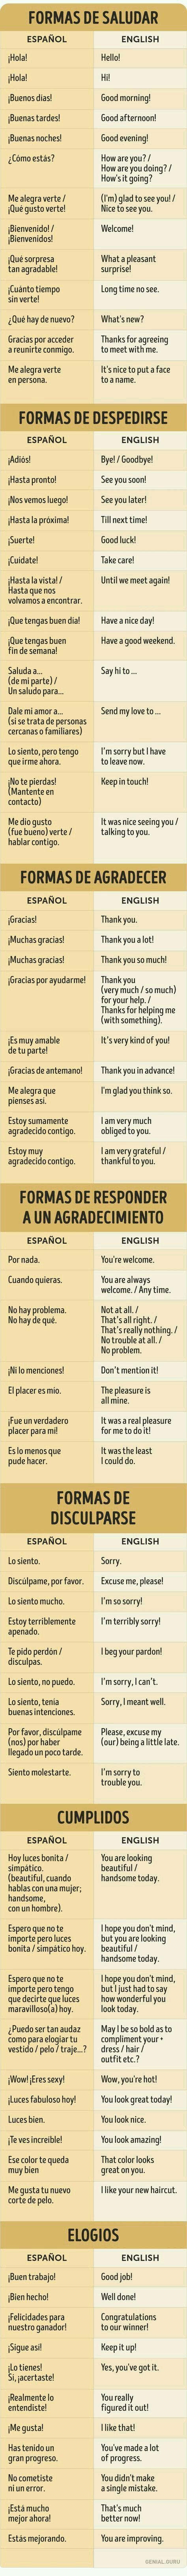 #saludos #ingles #learnspanishtips #spanishlessons #spanishlessontips